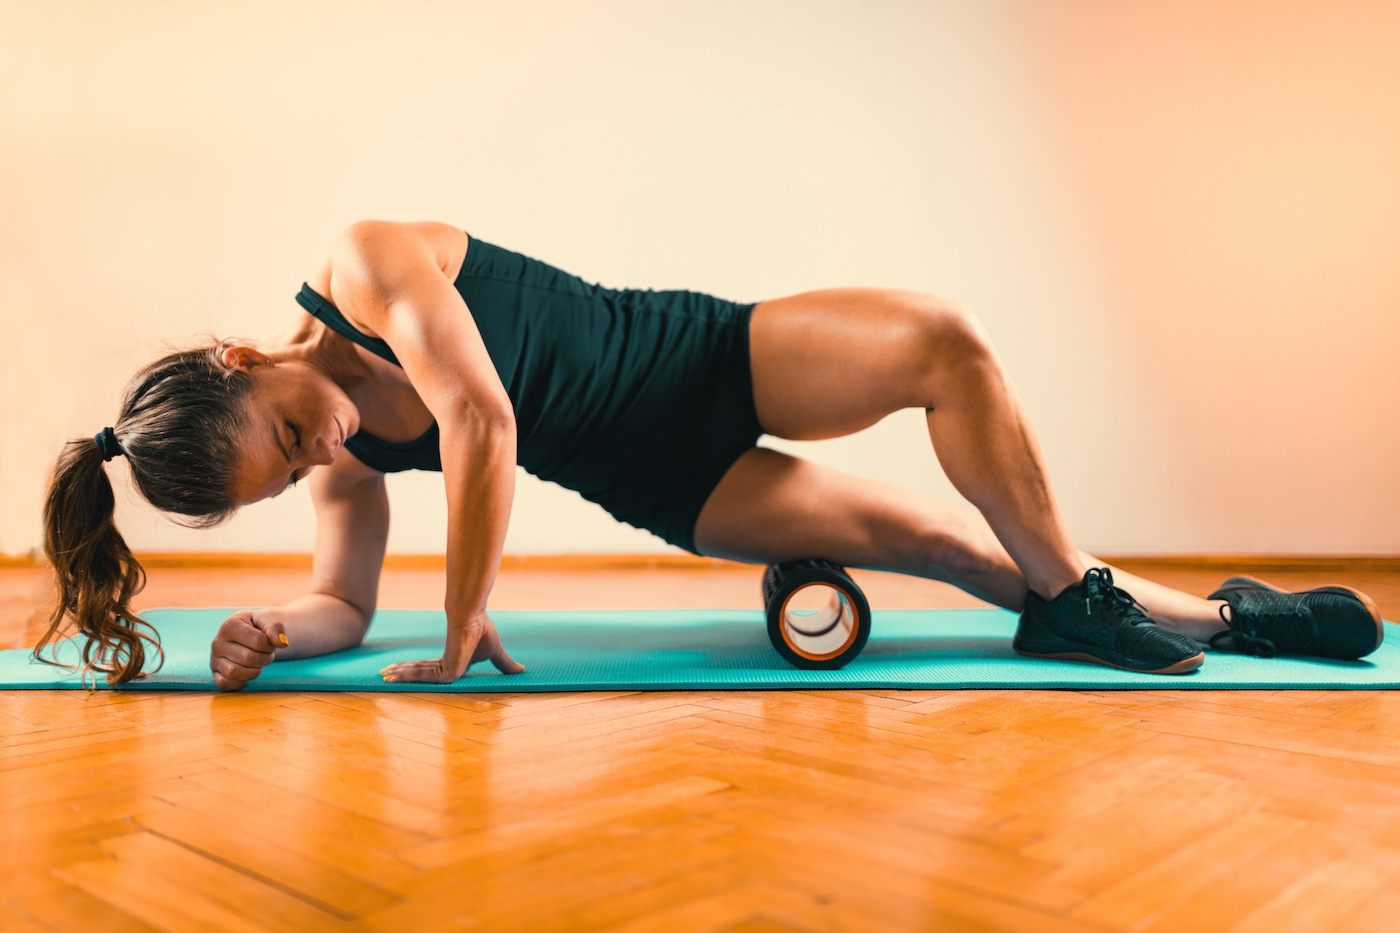 5 speedy ways to perform myofascial release on the tightest parts of your body